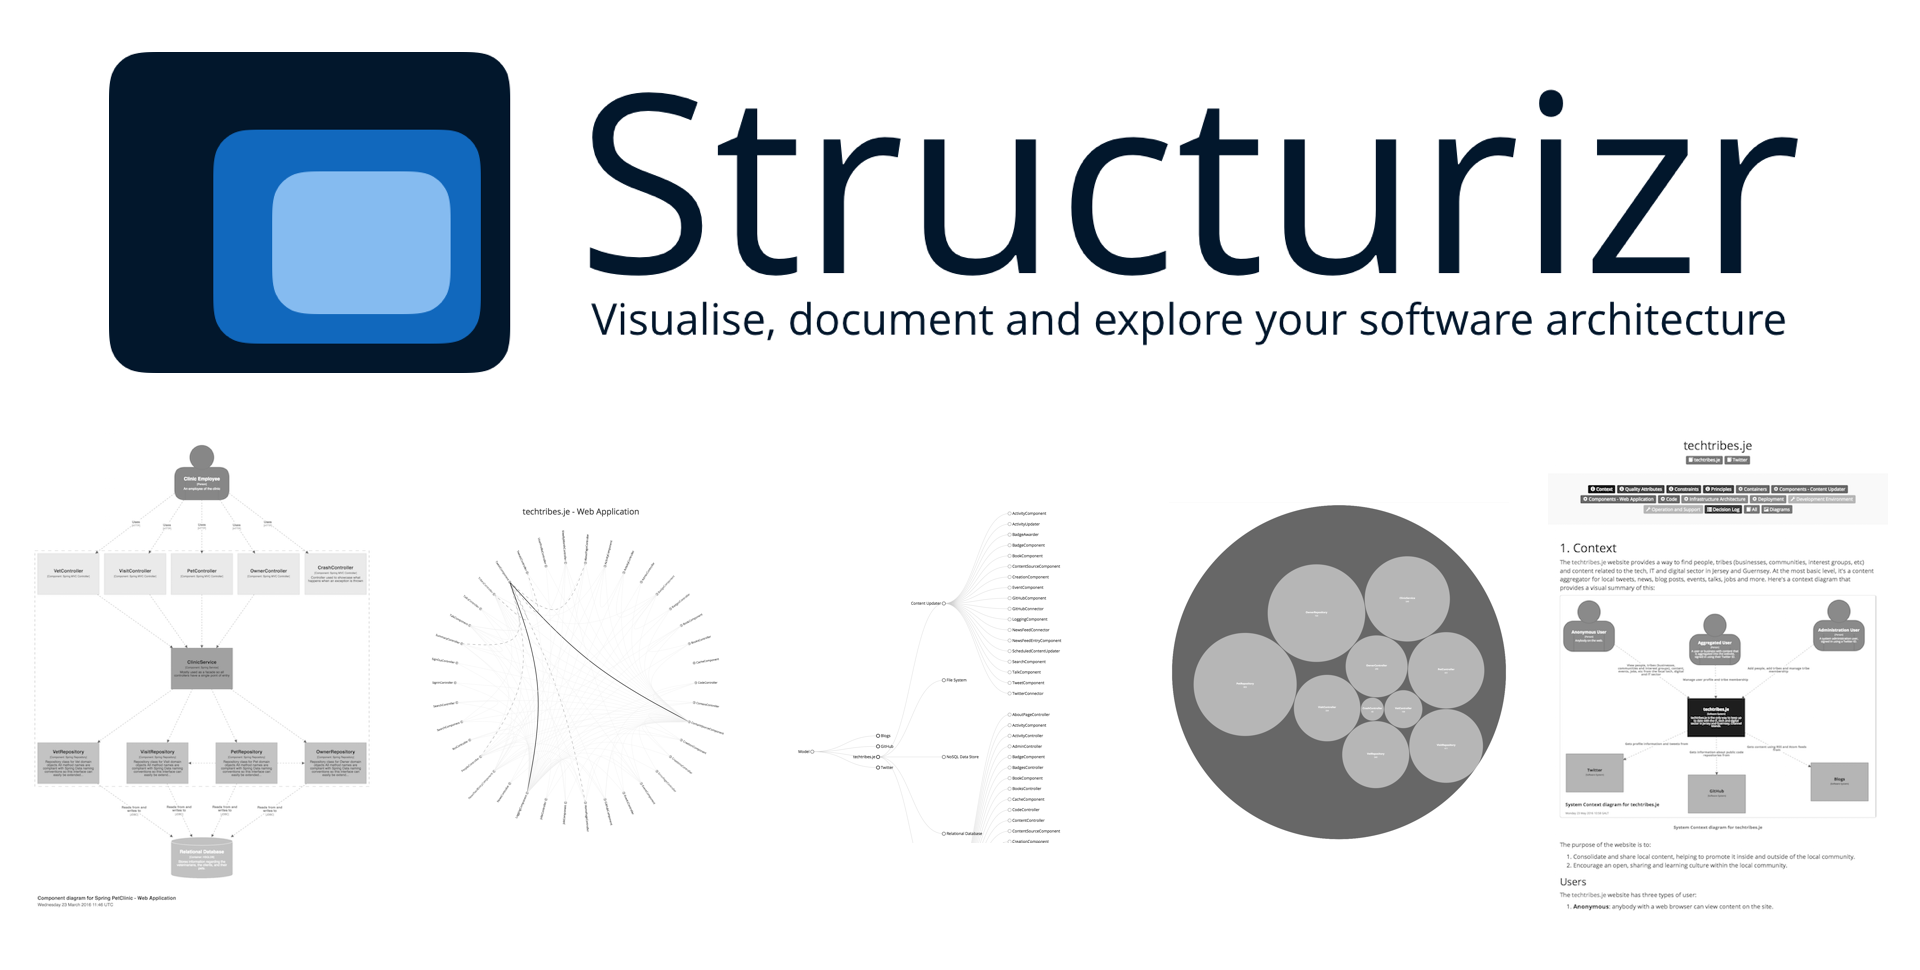 structurizr - create web-based software architecture diagrams using code